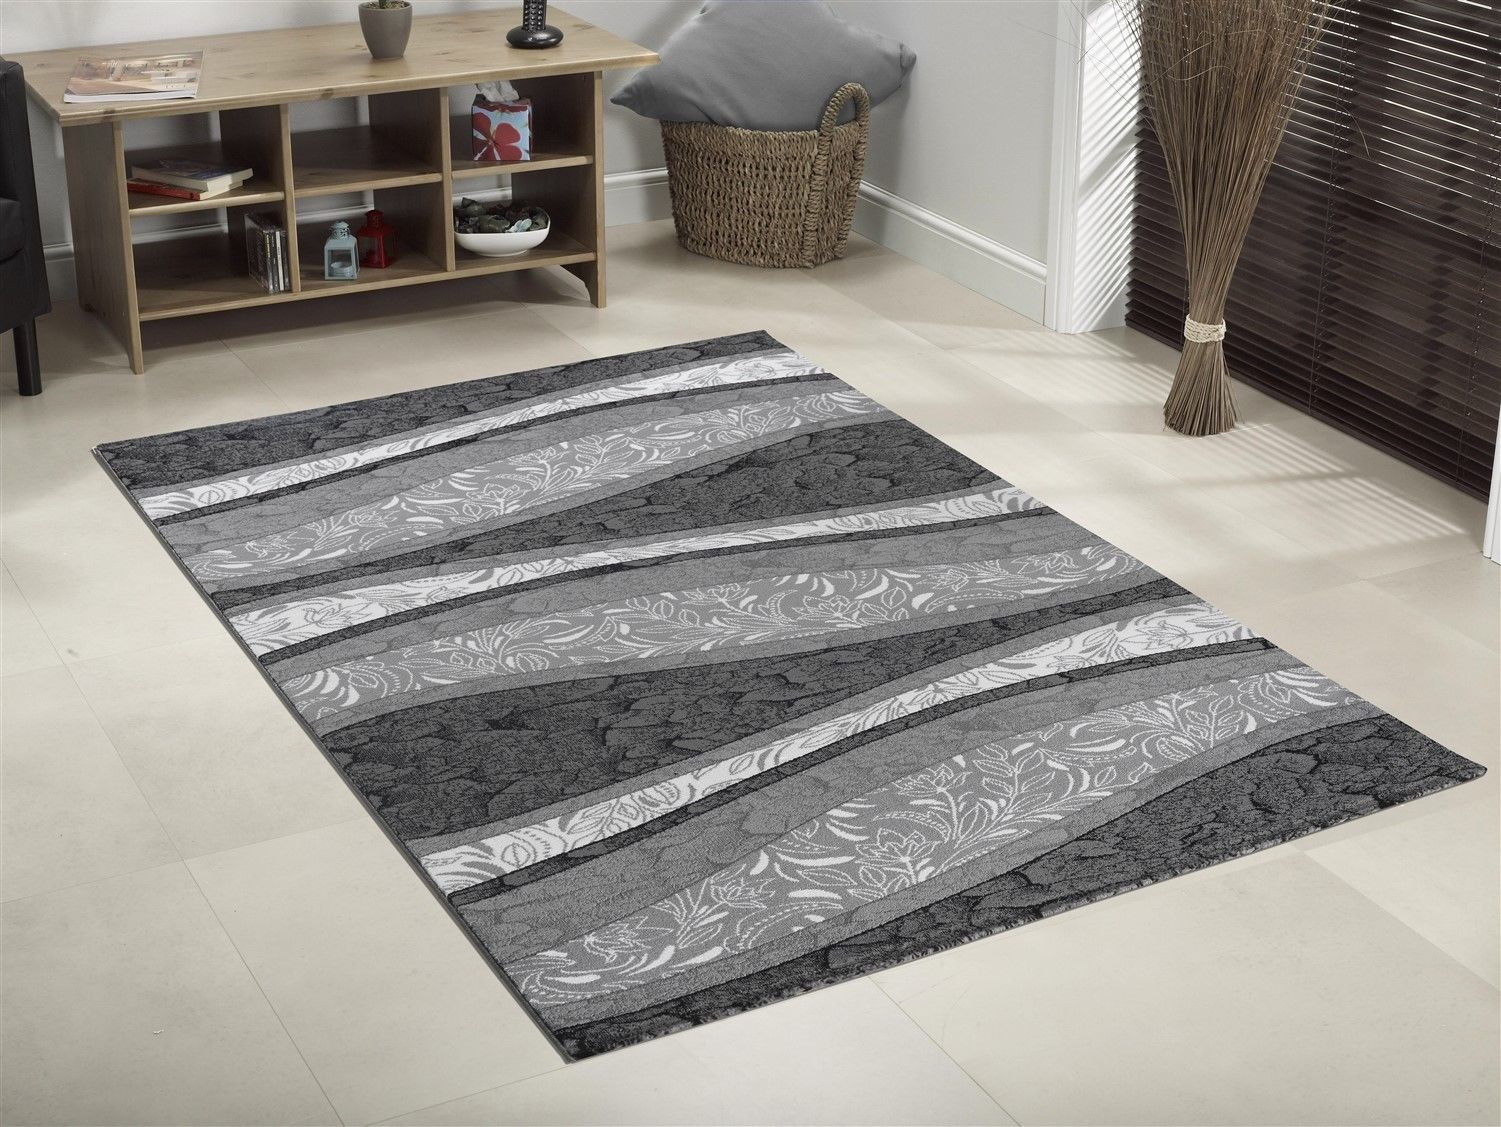 Promo Tapis Idees De Decoration Interieure French Decor